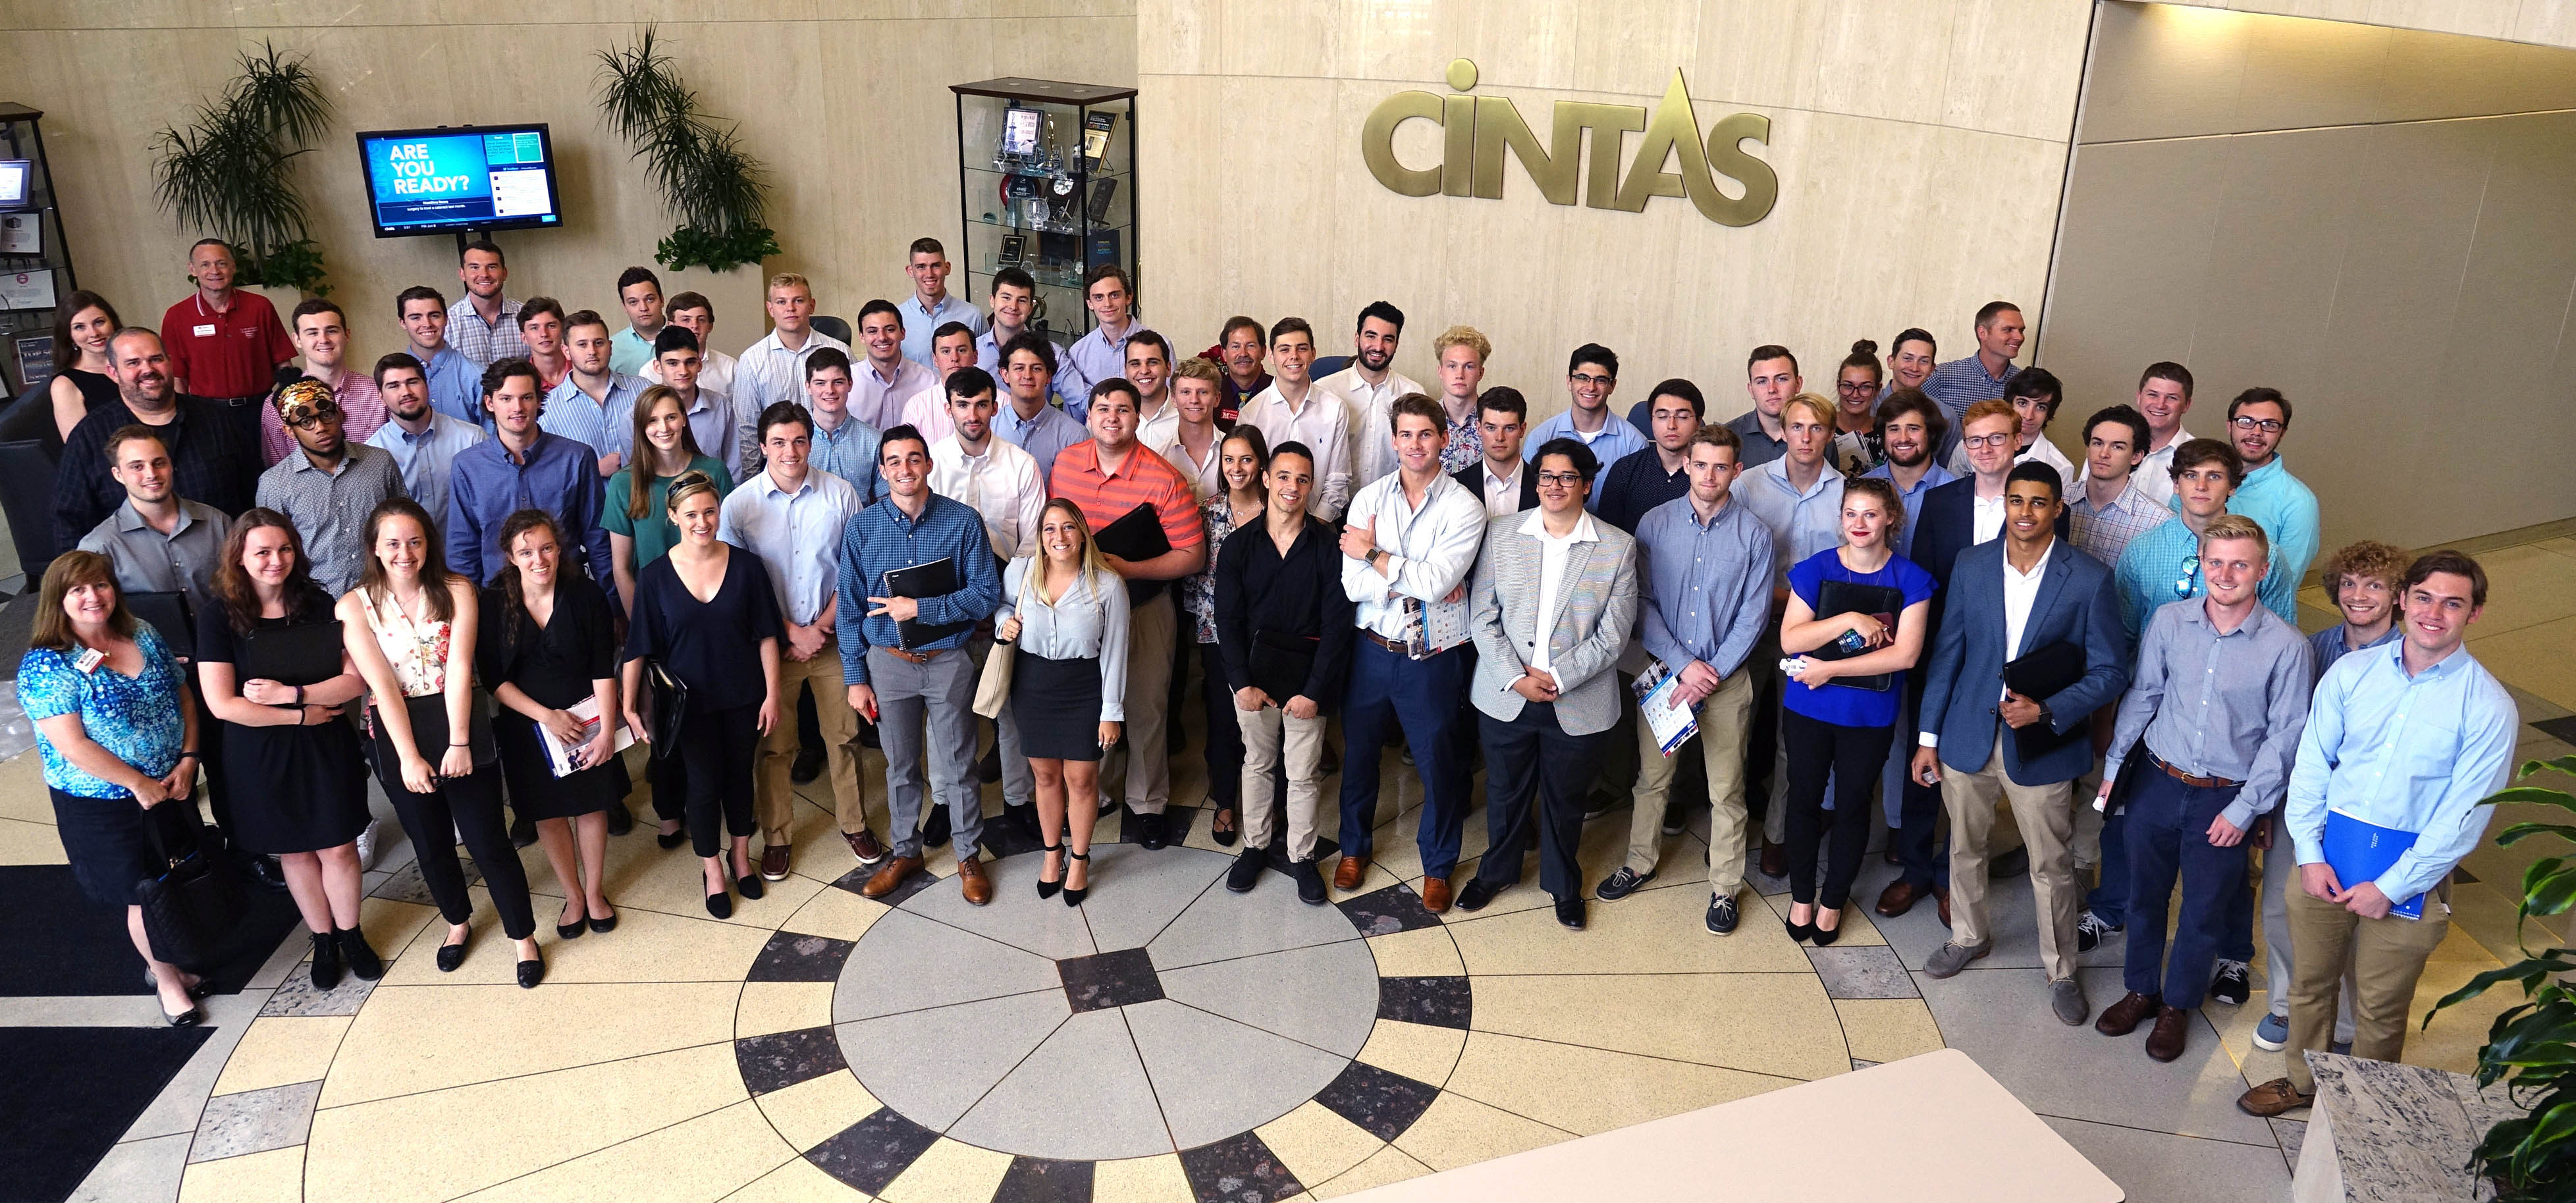 Miami PRIME students visit Cintas headquarters